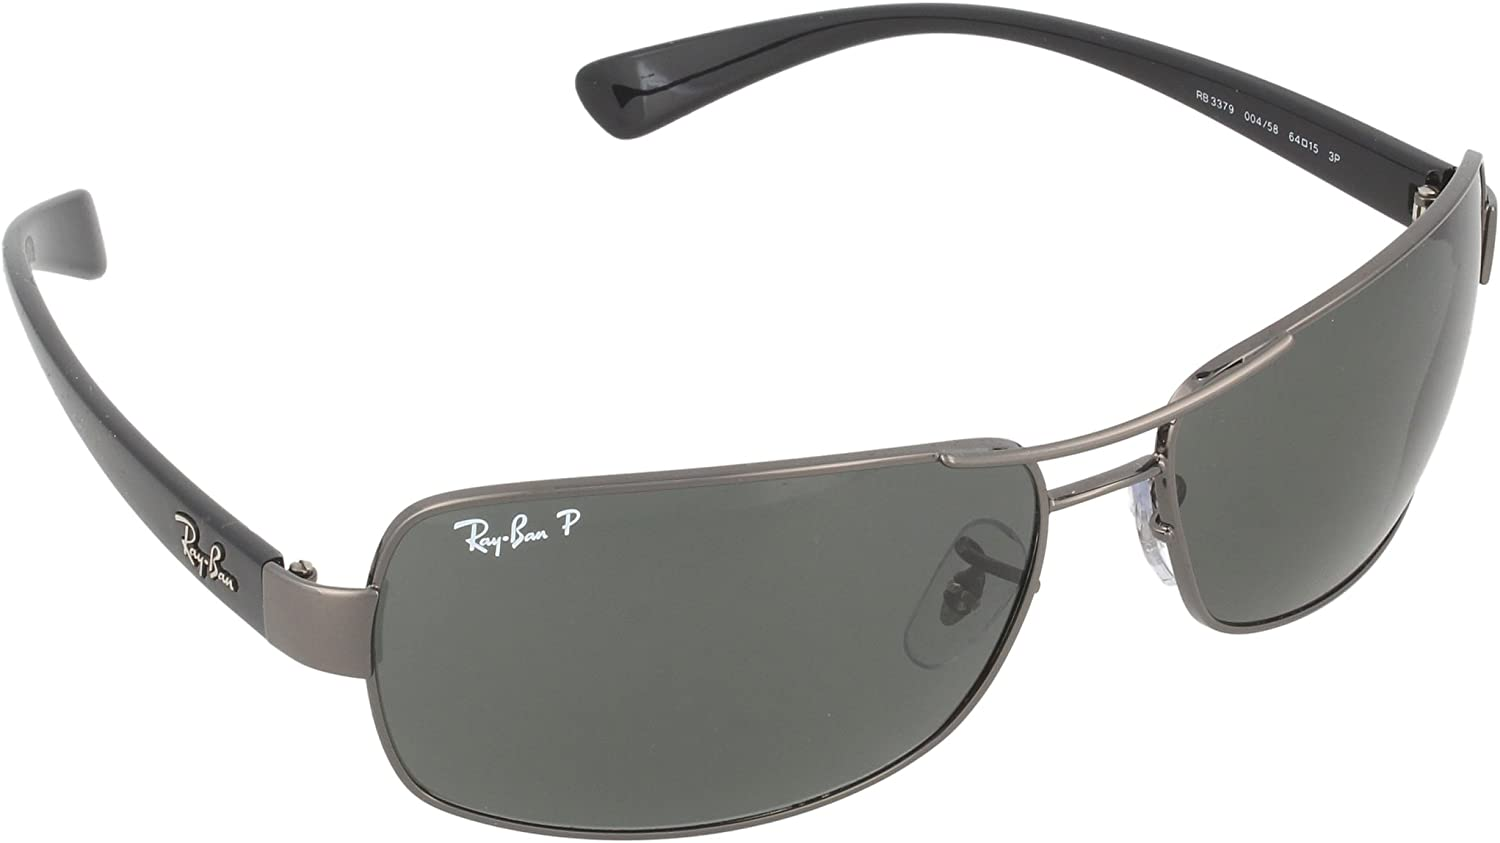 TALLA 64. Ray-Ban Sonnenbrille (RB 3379)